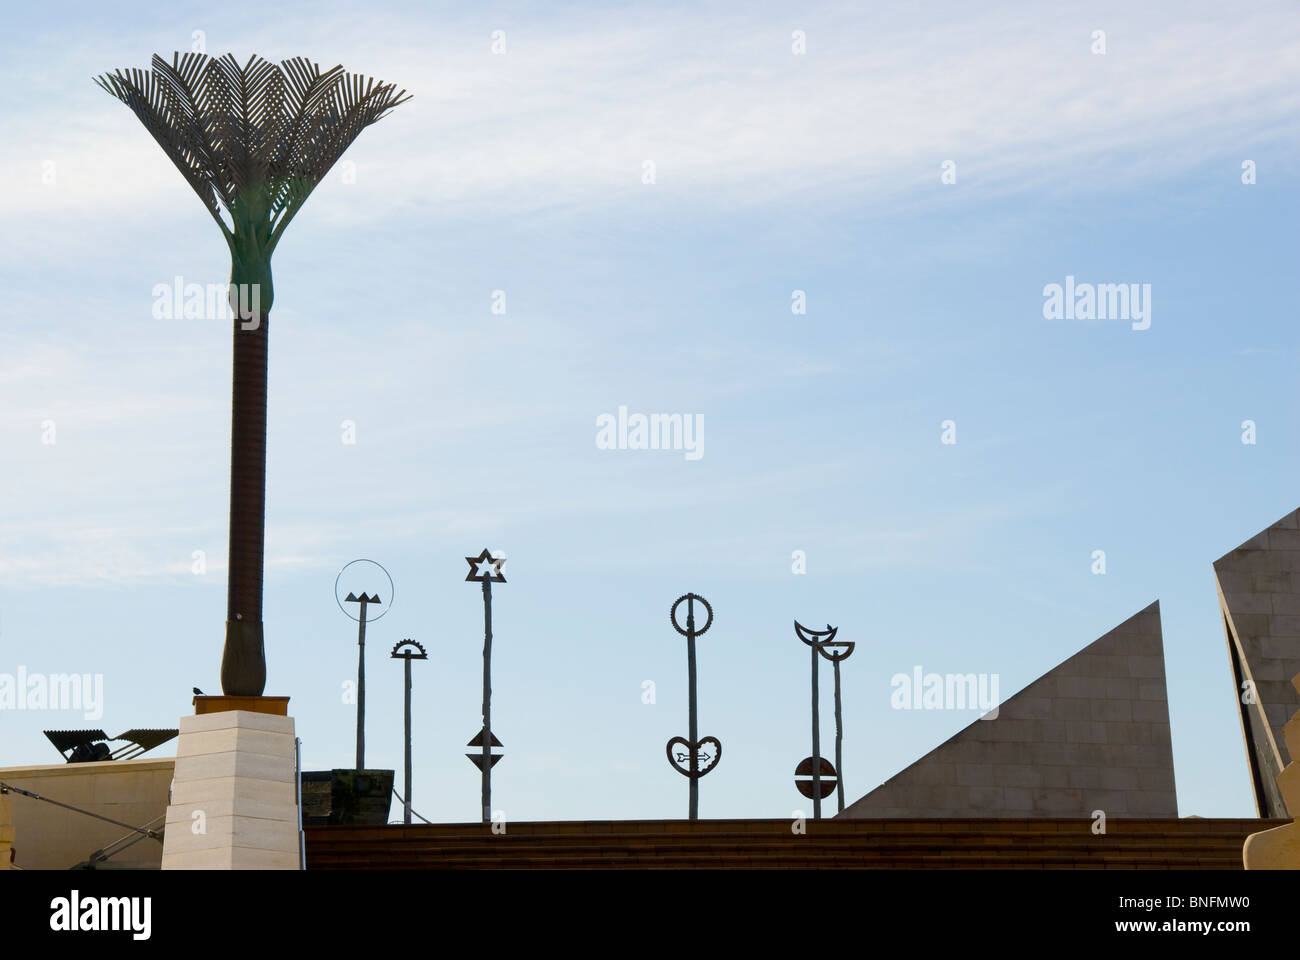 Art works on poles and artificial palm tree, Civic Square, Wellington, North island, New Zealand - Stock Image